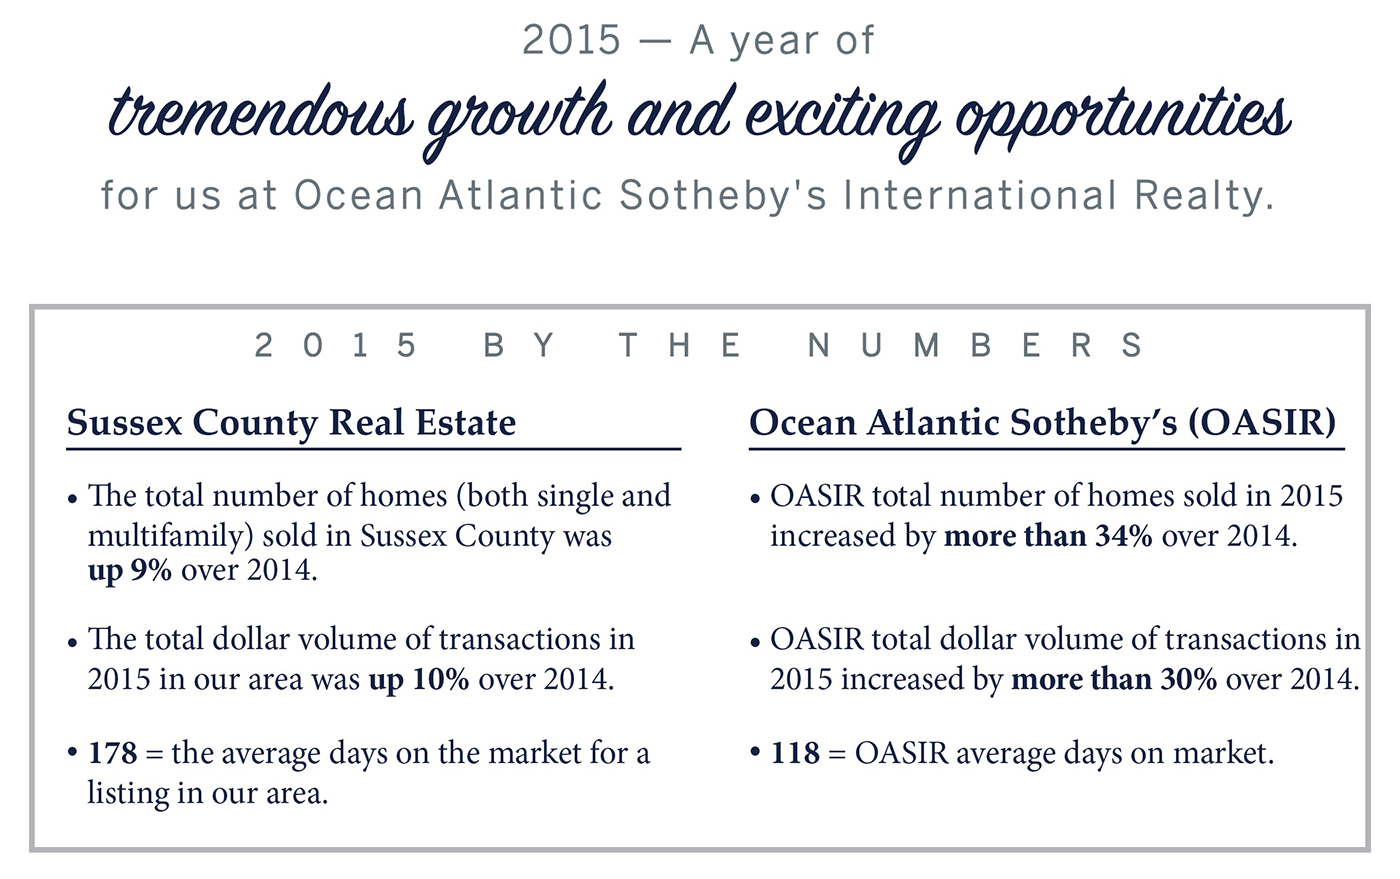 Ocean Atlantic Sotheby